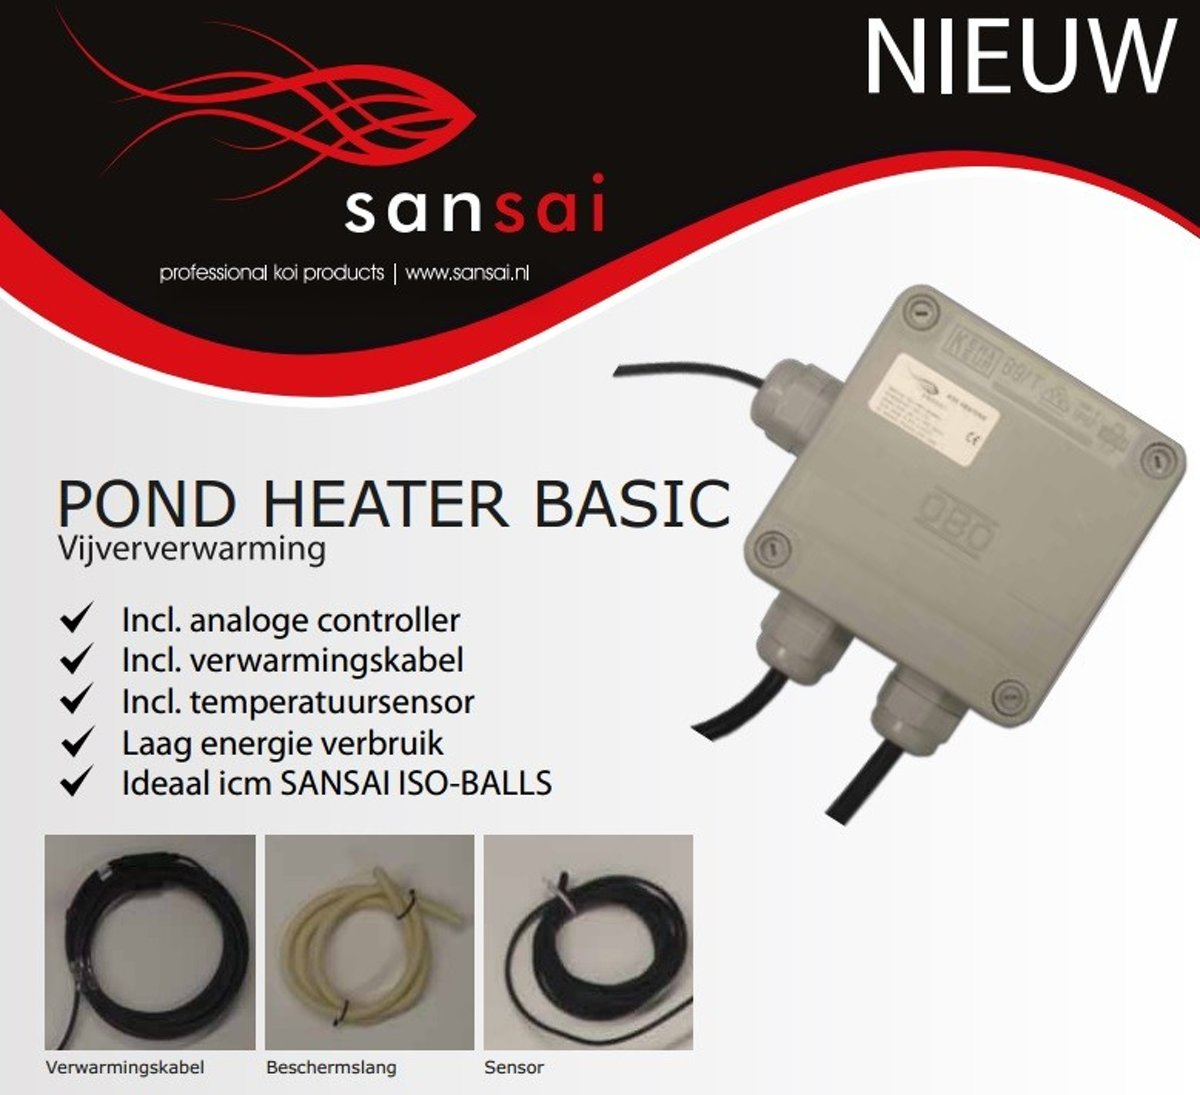 Sansai Pond Heater Basic 600 - 600W, 16m3 - 20m3, 20m kopen